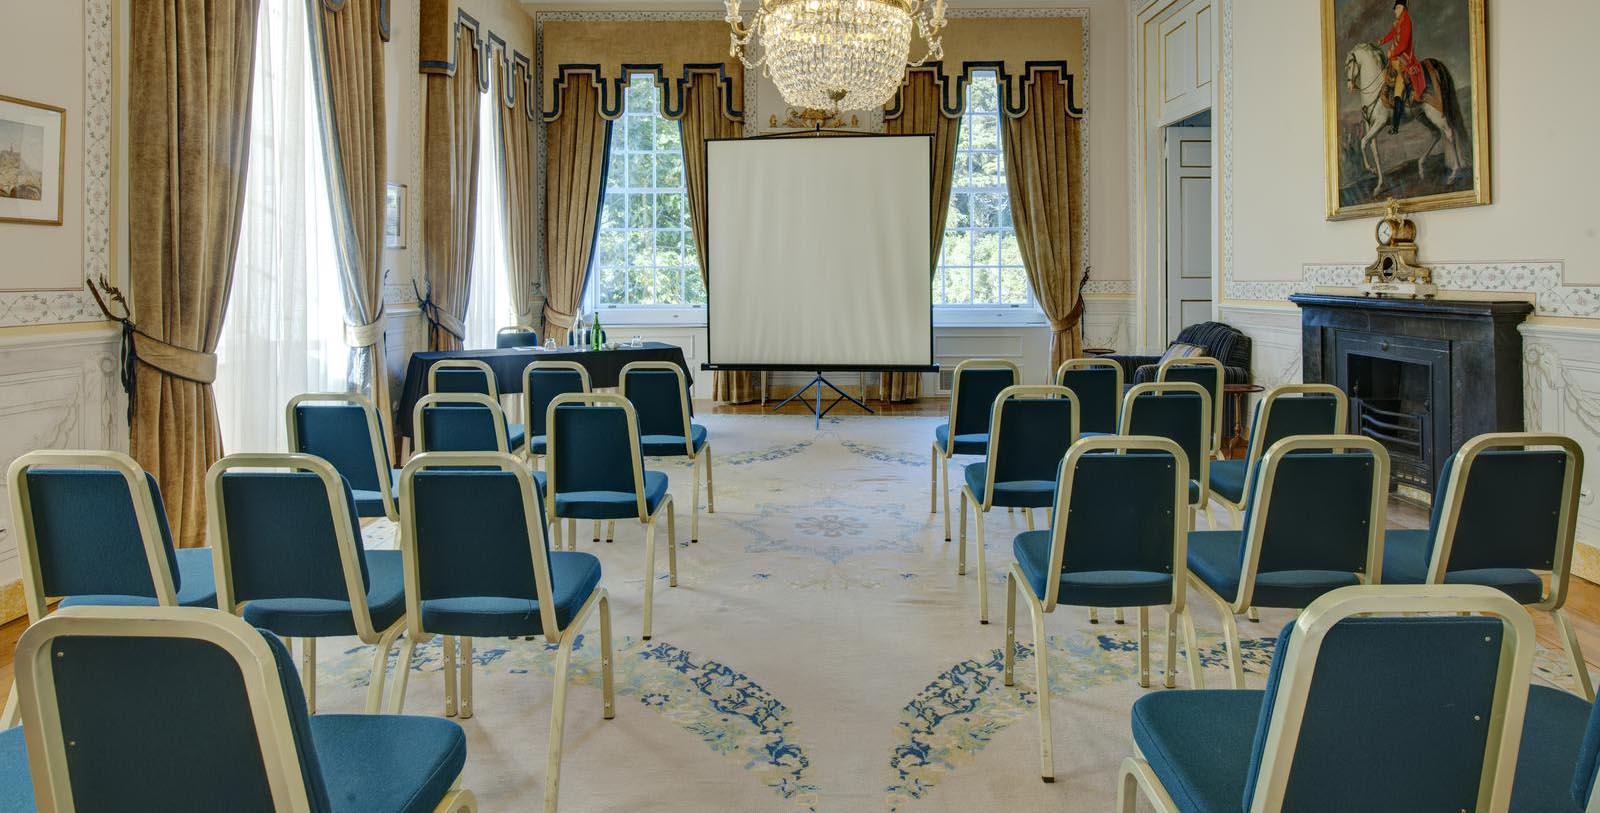 Image of Meeting Room at Tivoli Palacio de Seteais, 1787, Member of Historic Hotels Worldwide, in Sintra, Portugal, Special Occasions